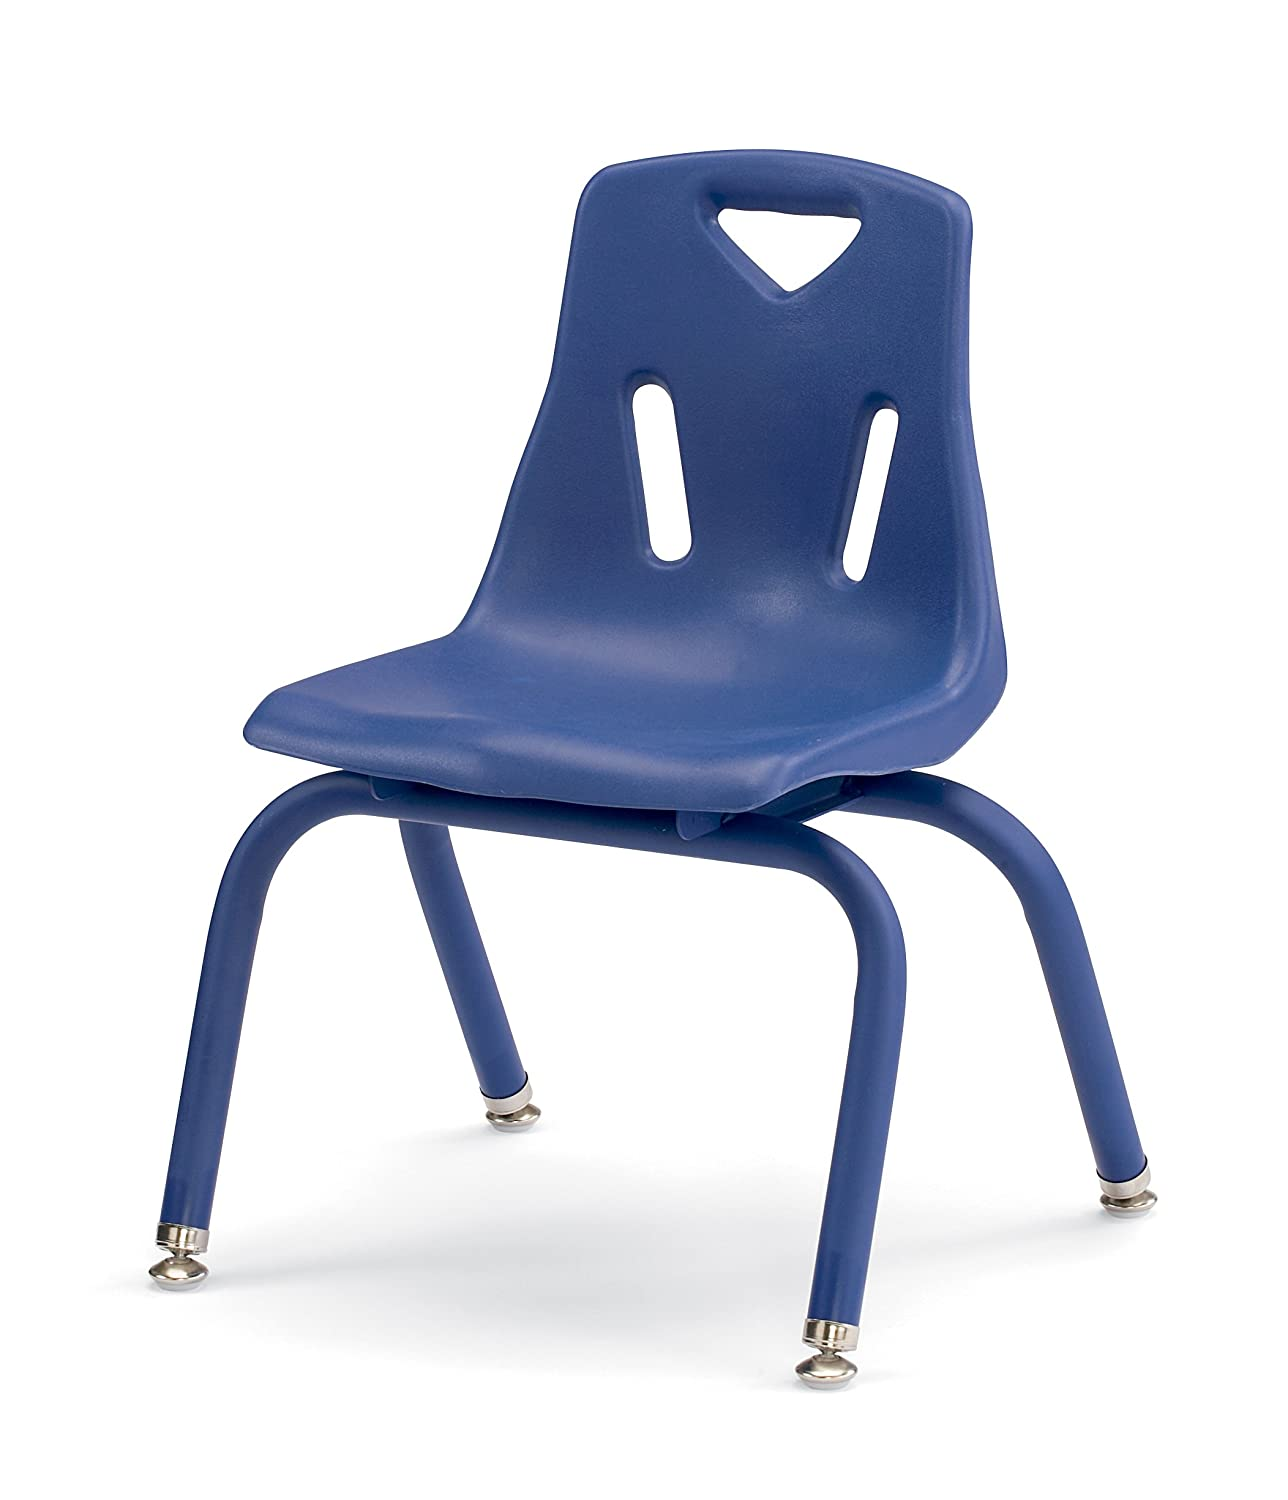 Berries 8122JC1003 Stacking Chair with Powder-Coated Legs, 12 Height, Blue